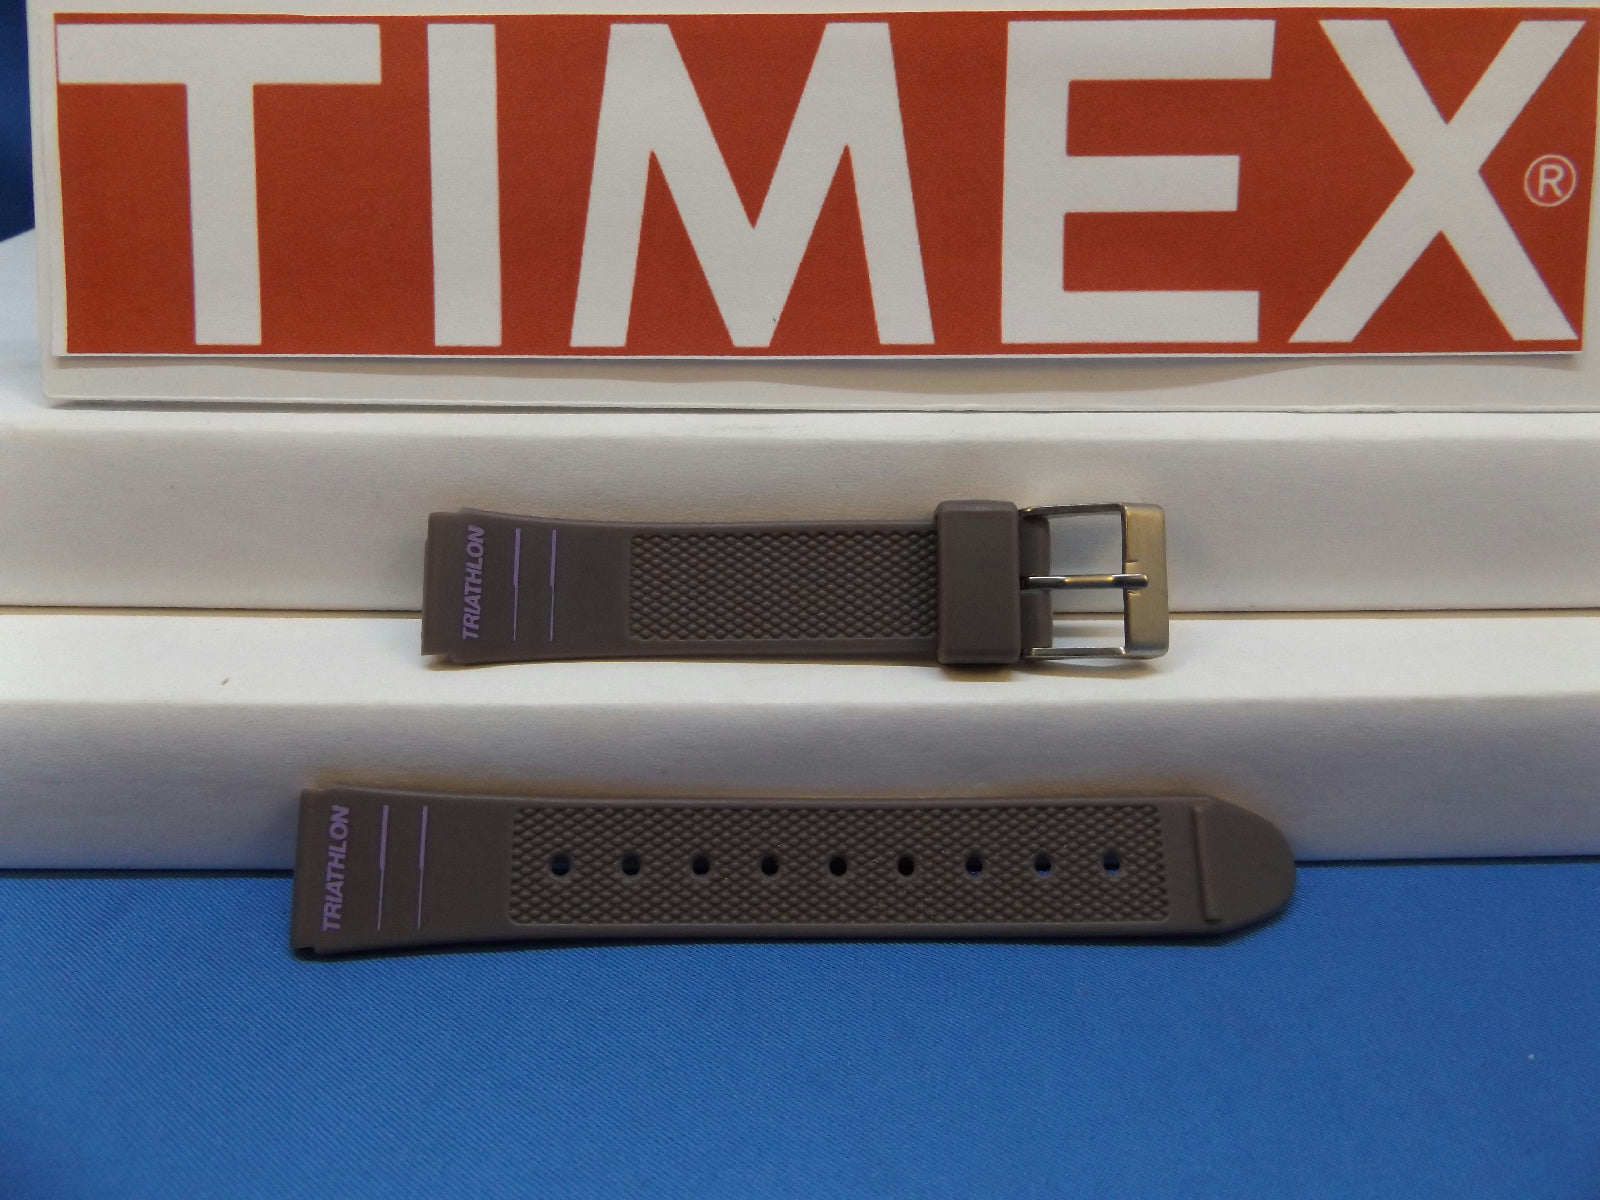 Timex watchband 60151 Triathalon Purple Womens  14mm. New Band 1994 Model